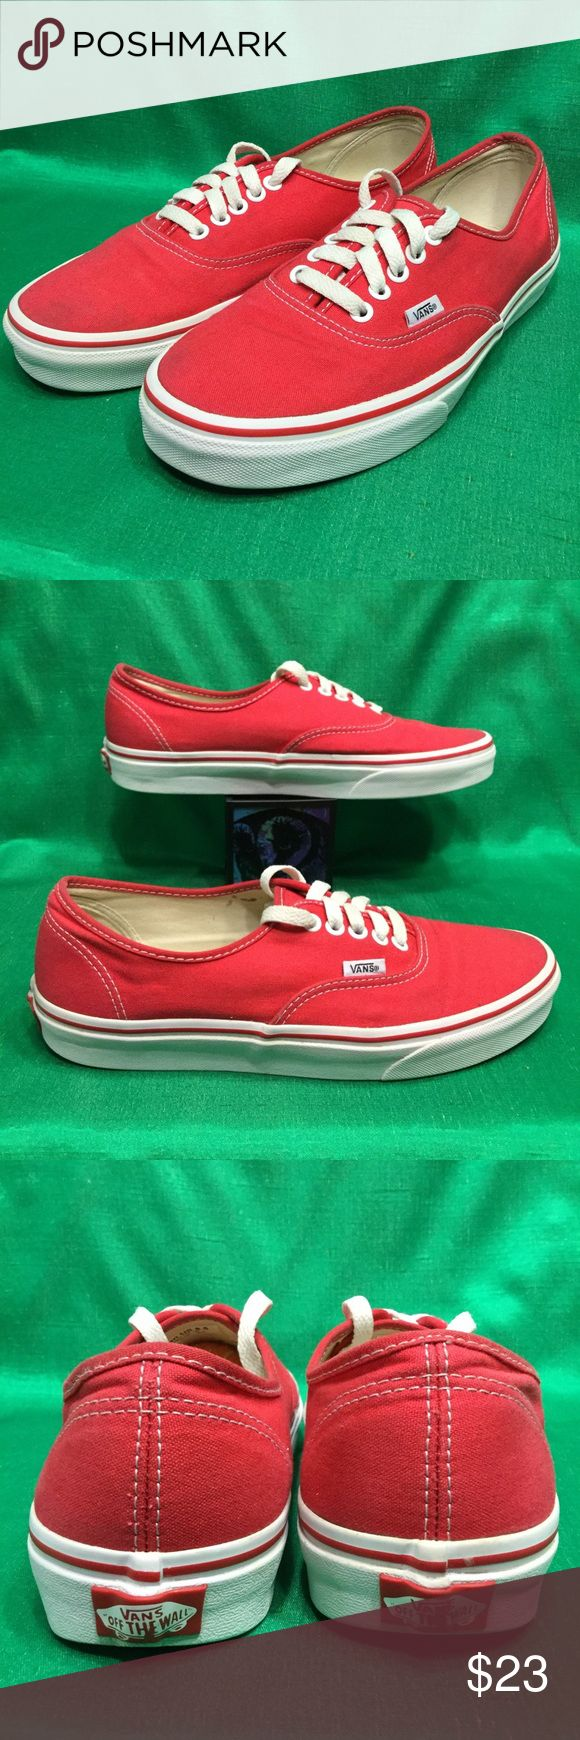 VANS AUTHENTIC red sk8 pro atwood lo 🔥 W10 m8.5 Clean . Gentle wear . No issues . Women's 10 Vans Shoes